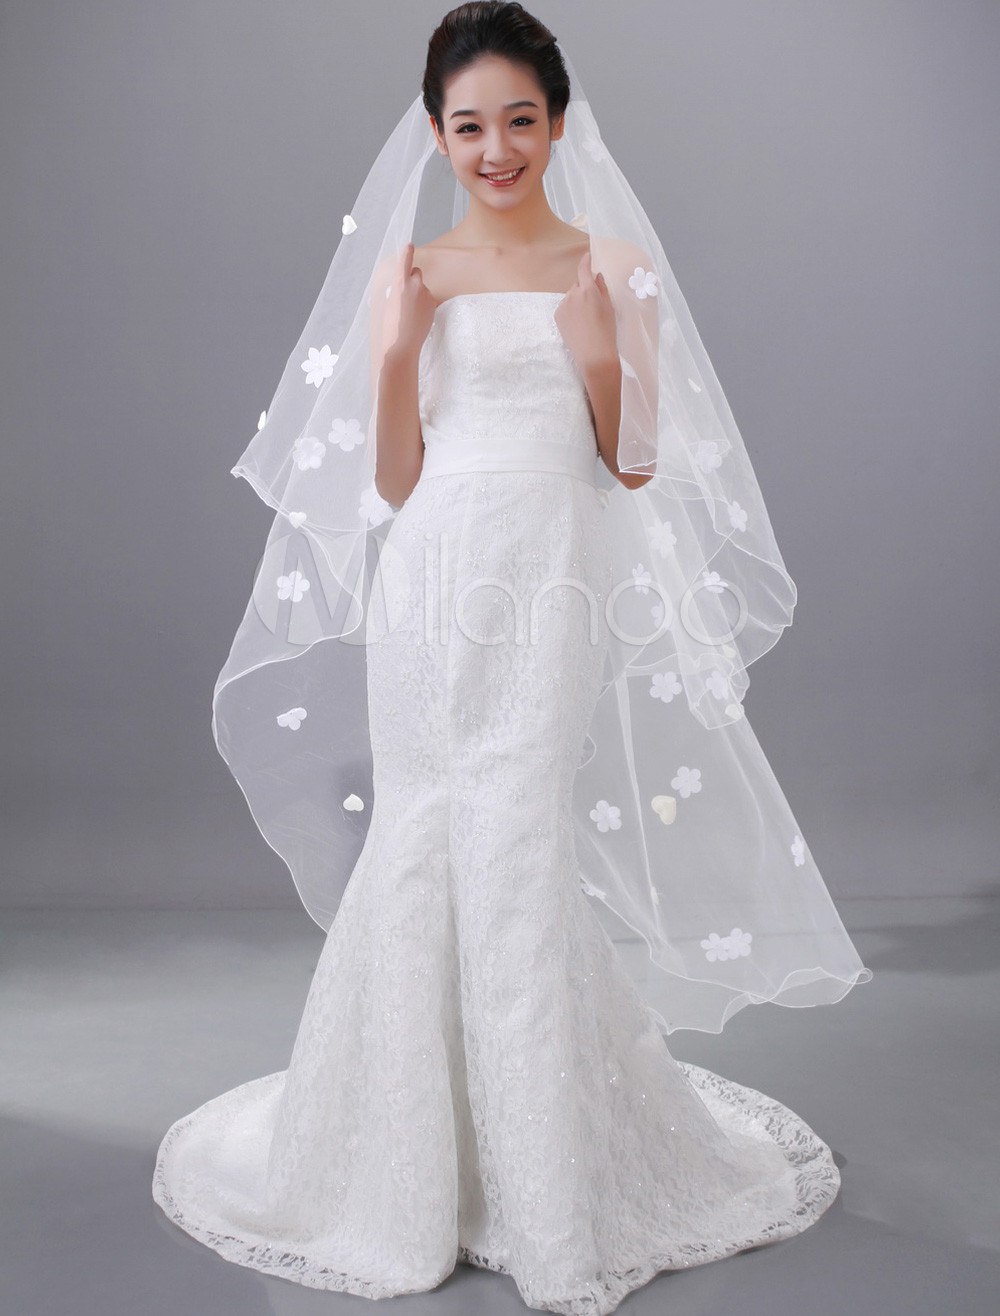 White Two-Tier Waterfall Beading Tulle Applique Wedding Veil